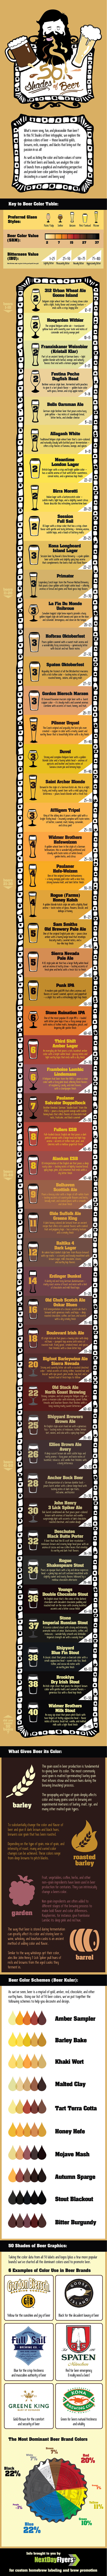 50 Shades of Beer Infographic